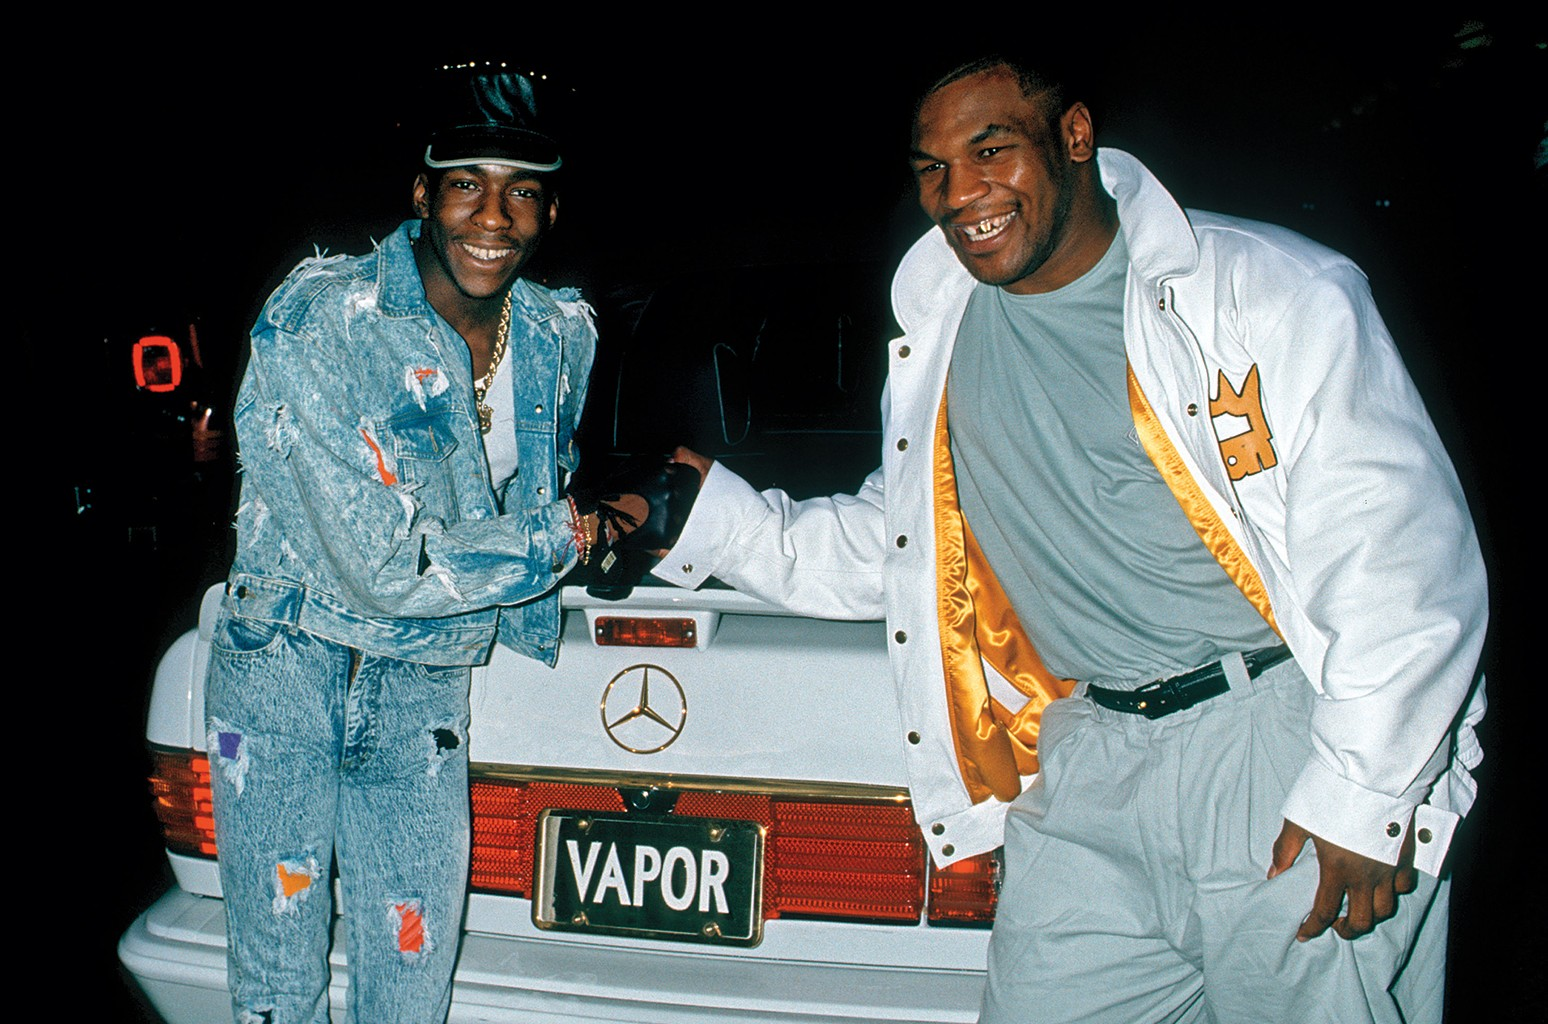 Bobby Brown & Mike Tyson